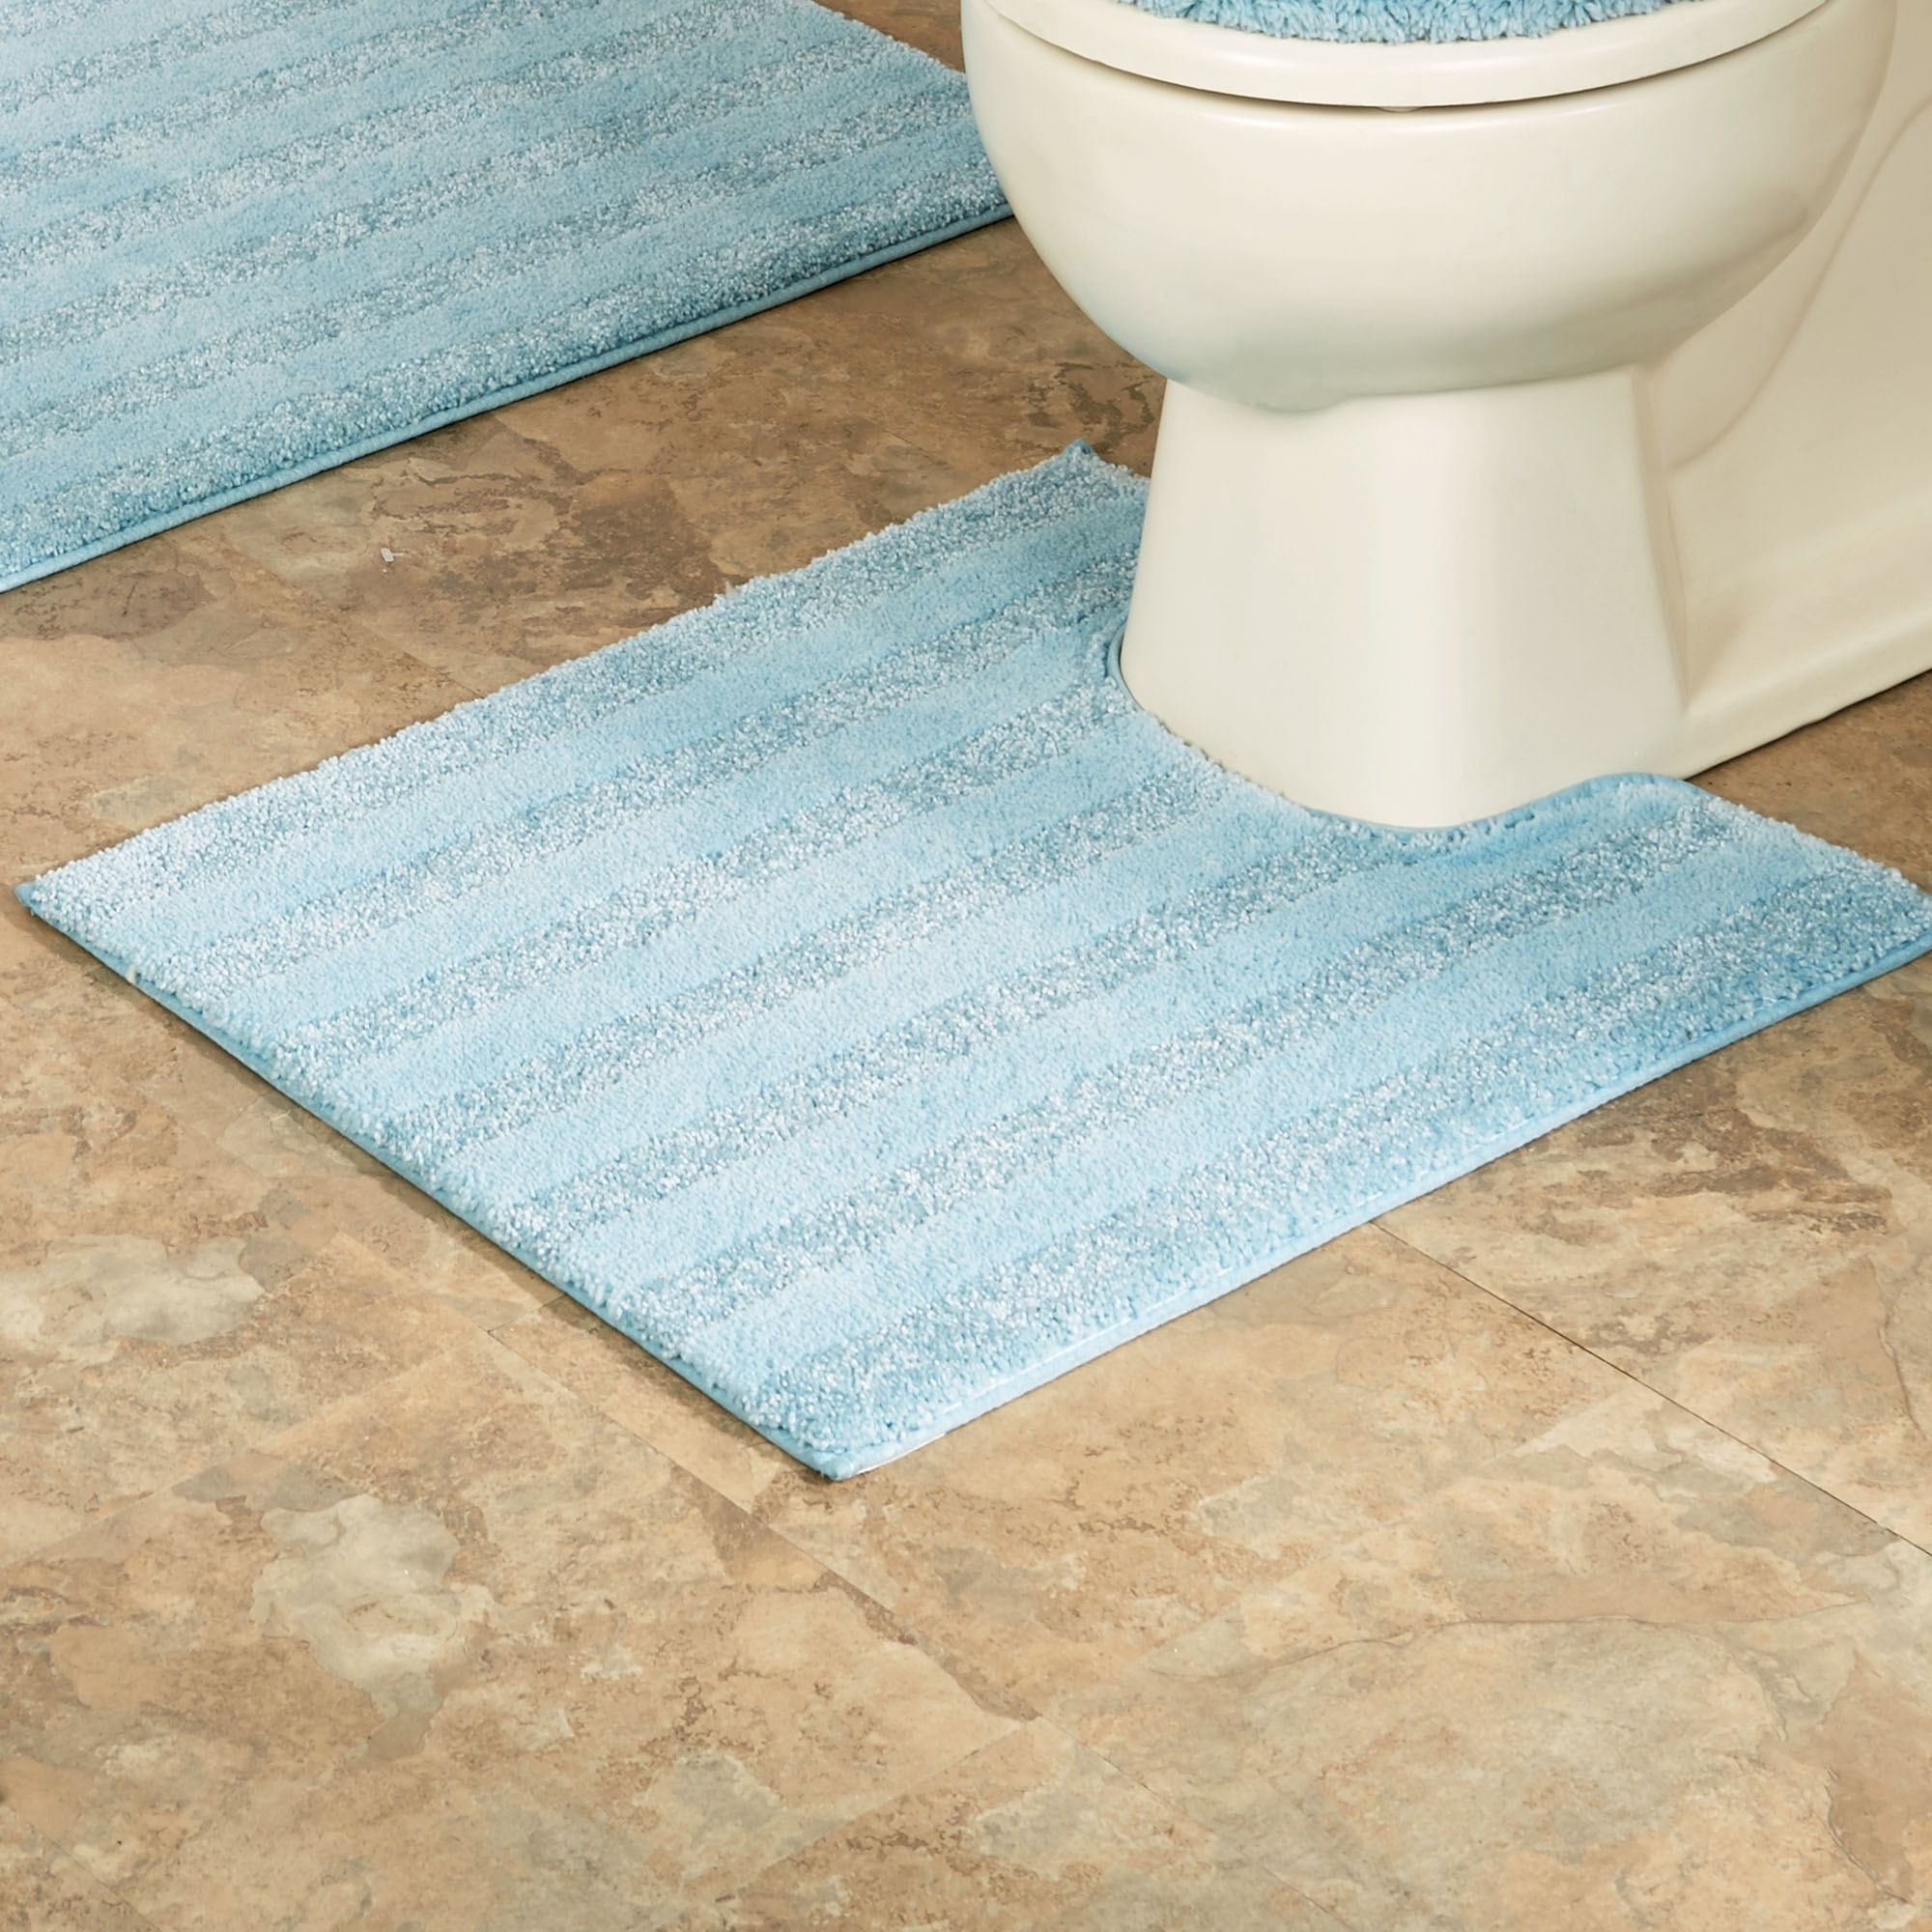 Striped Bath Mats